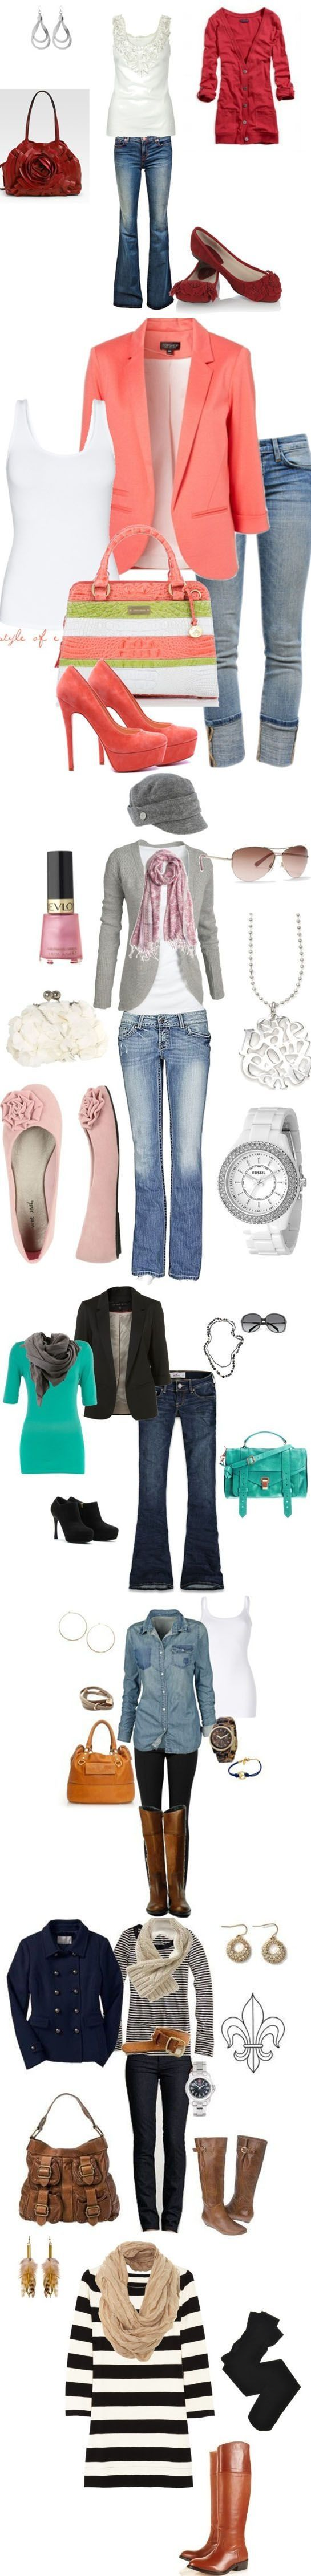 I like pretty much everything shown in this picture, except the striped outfits at the bottom.  Don't need a purse, tho!